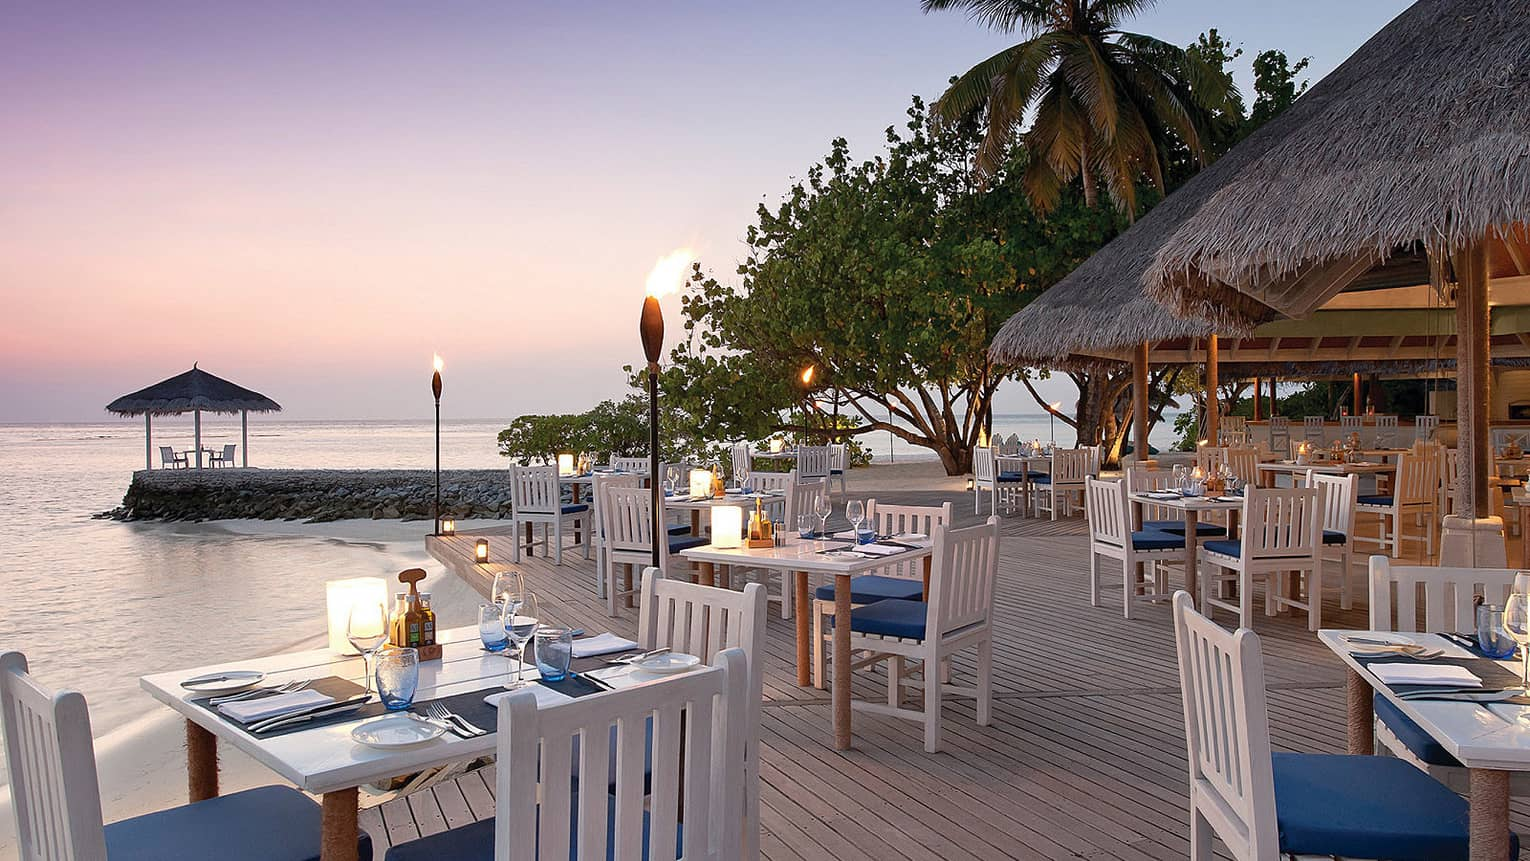 Reef Club on the water at sunset, with white tables on open patio and torches